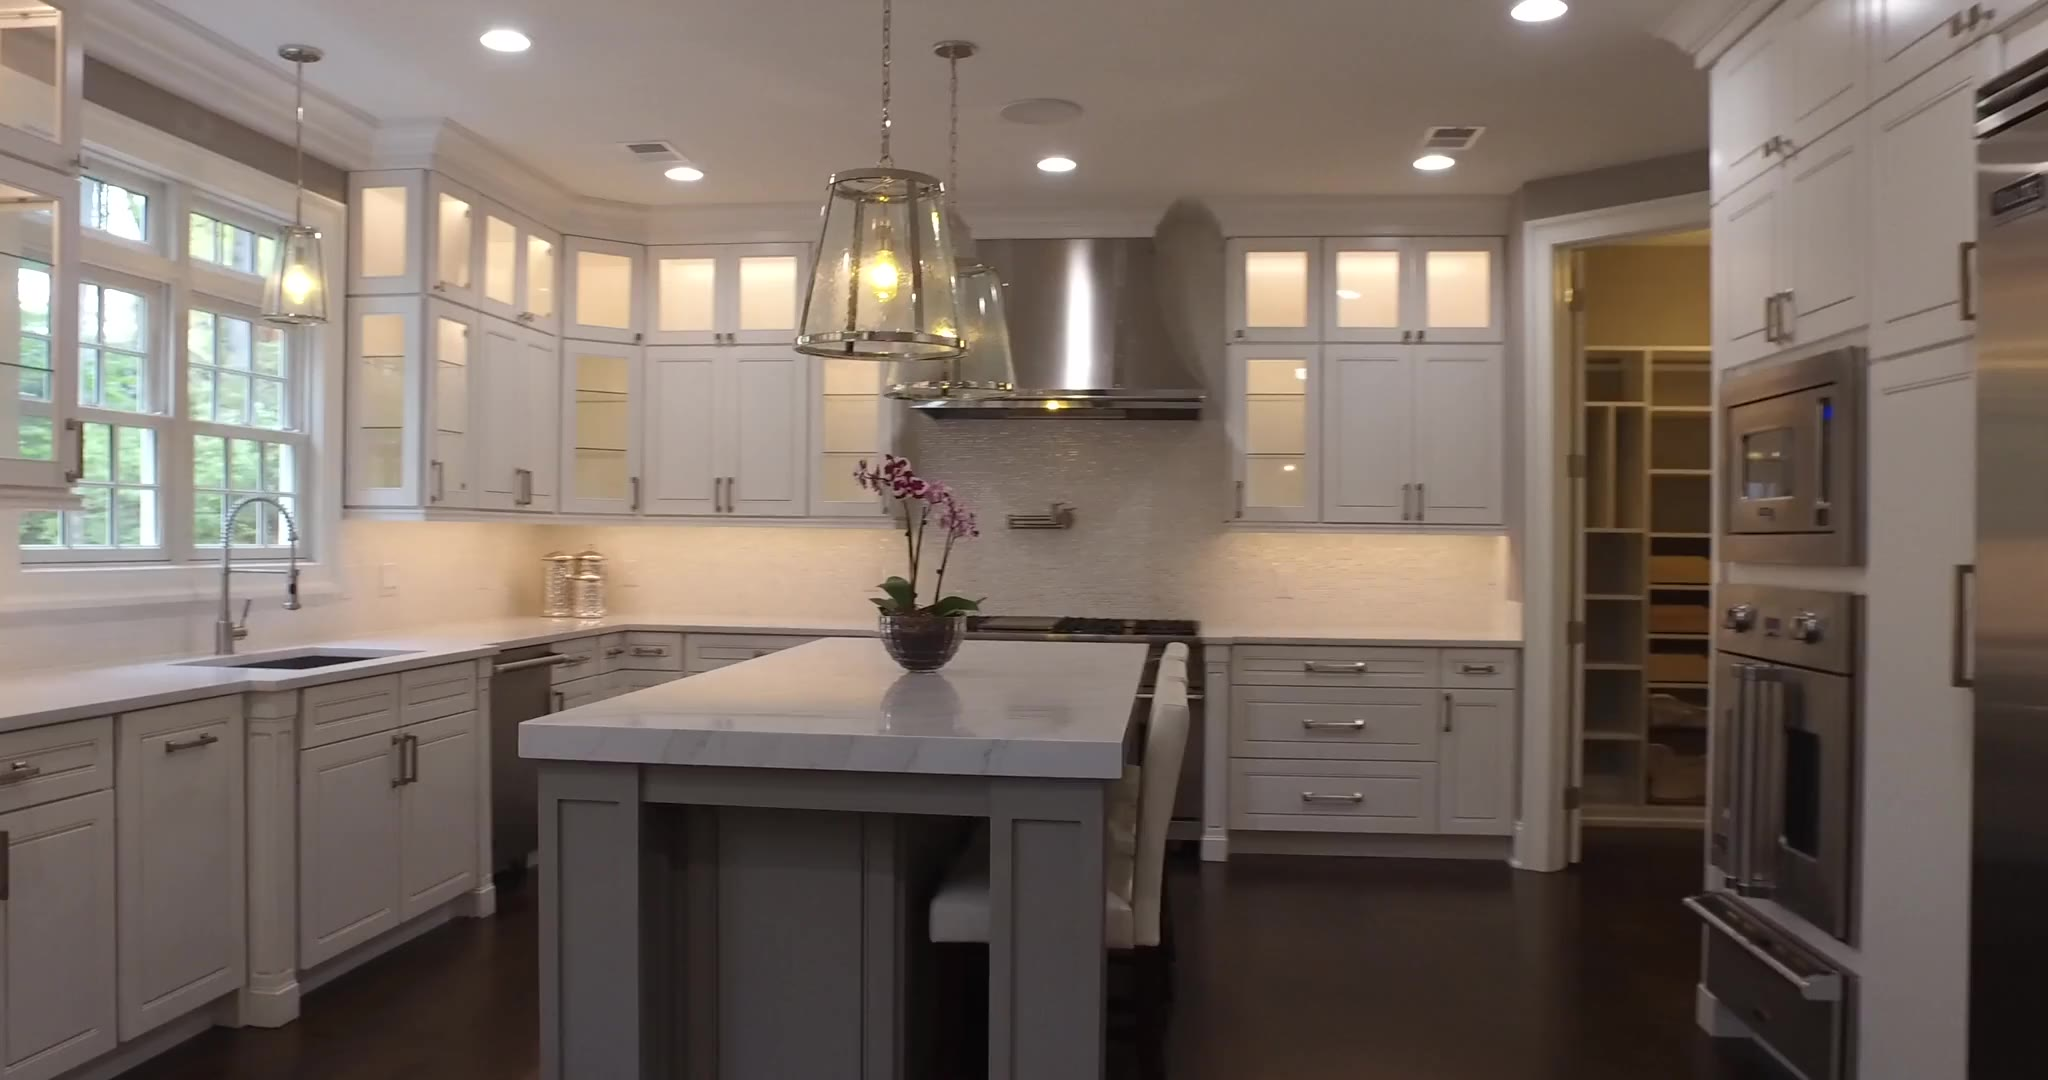 Home New Concept Cabinet